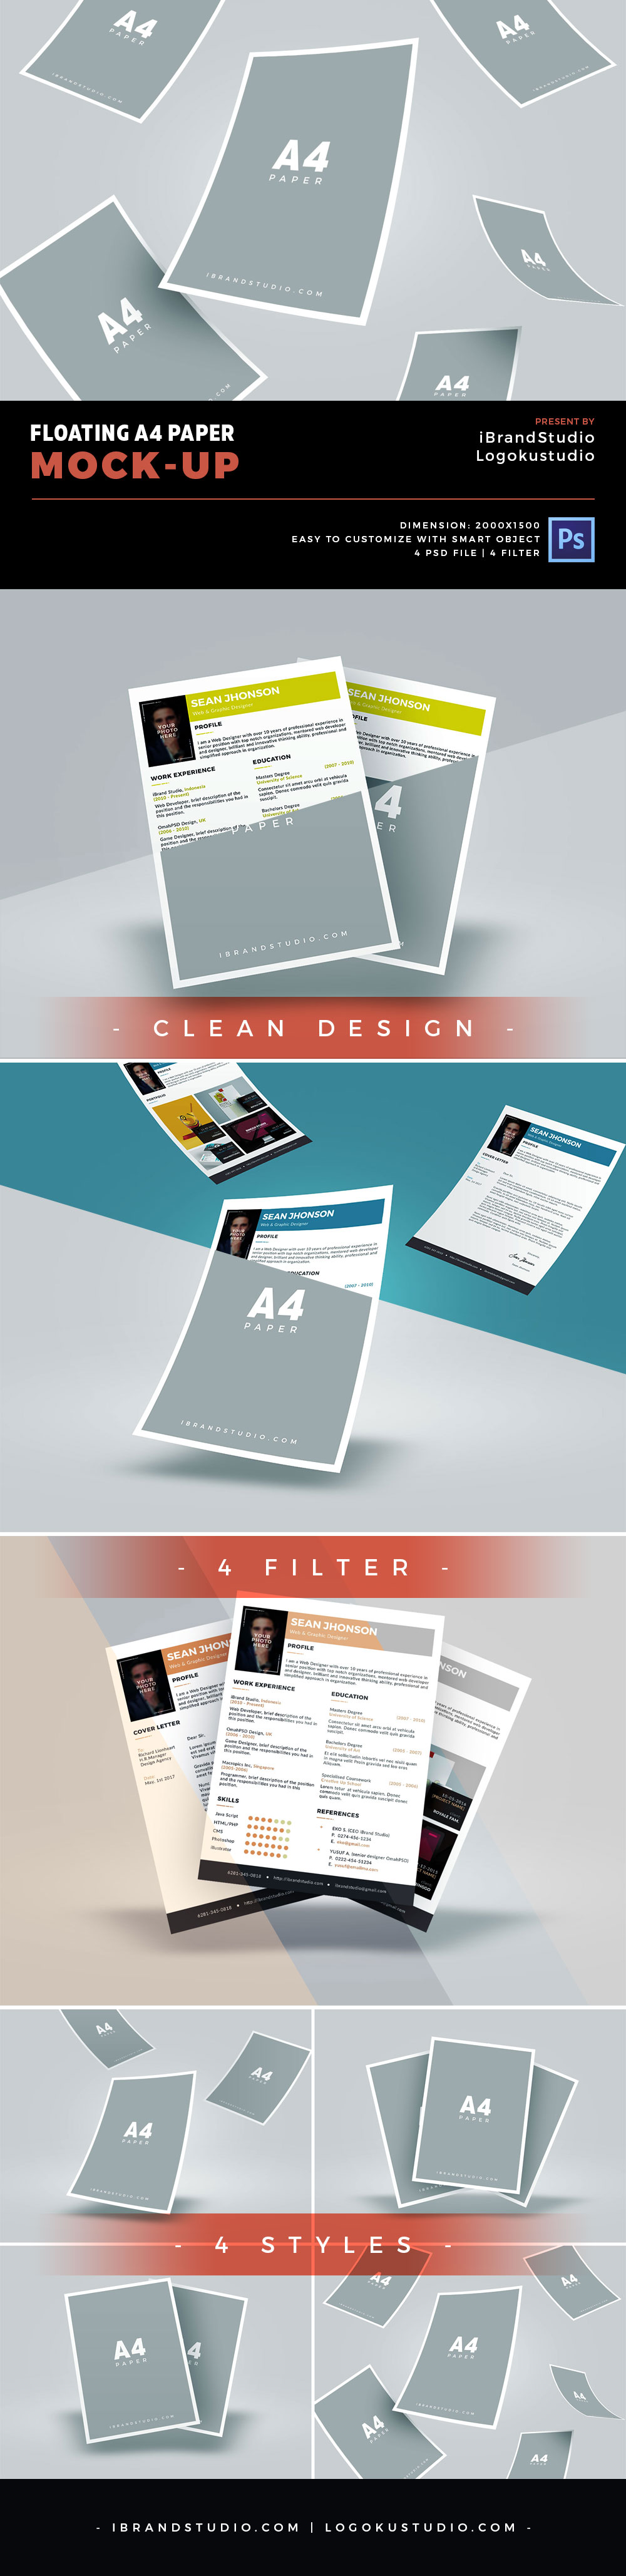 Free Floating A4 Paper Mockup Templates